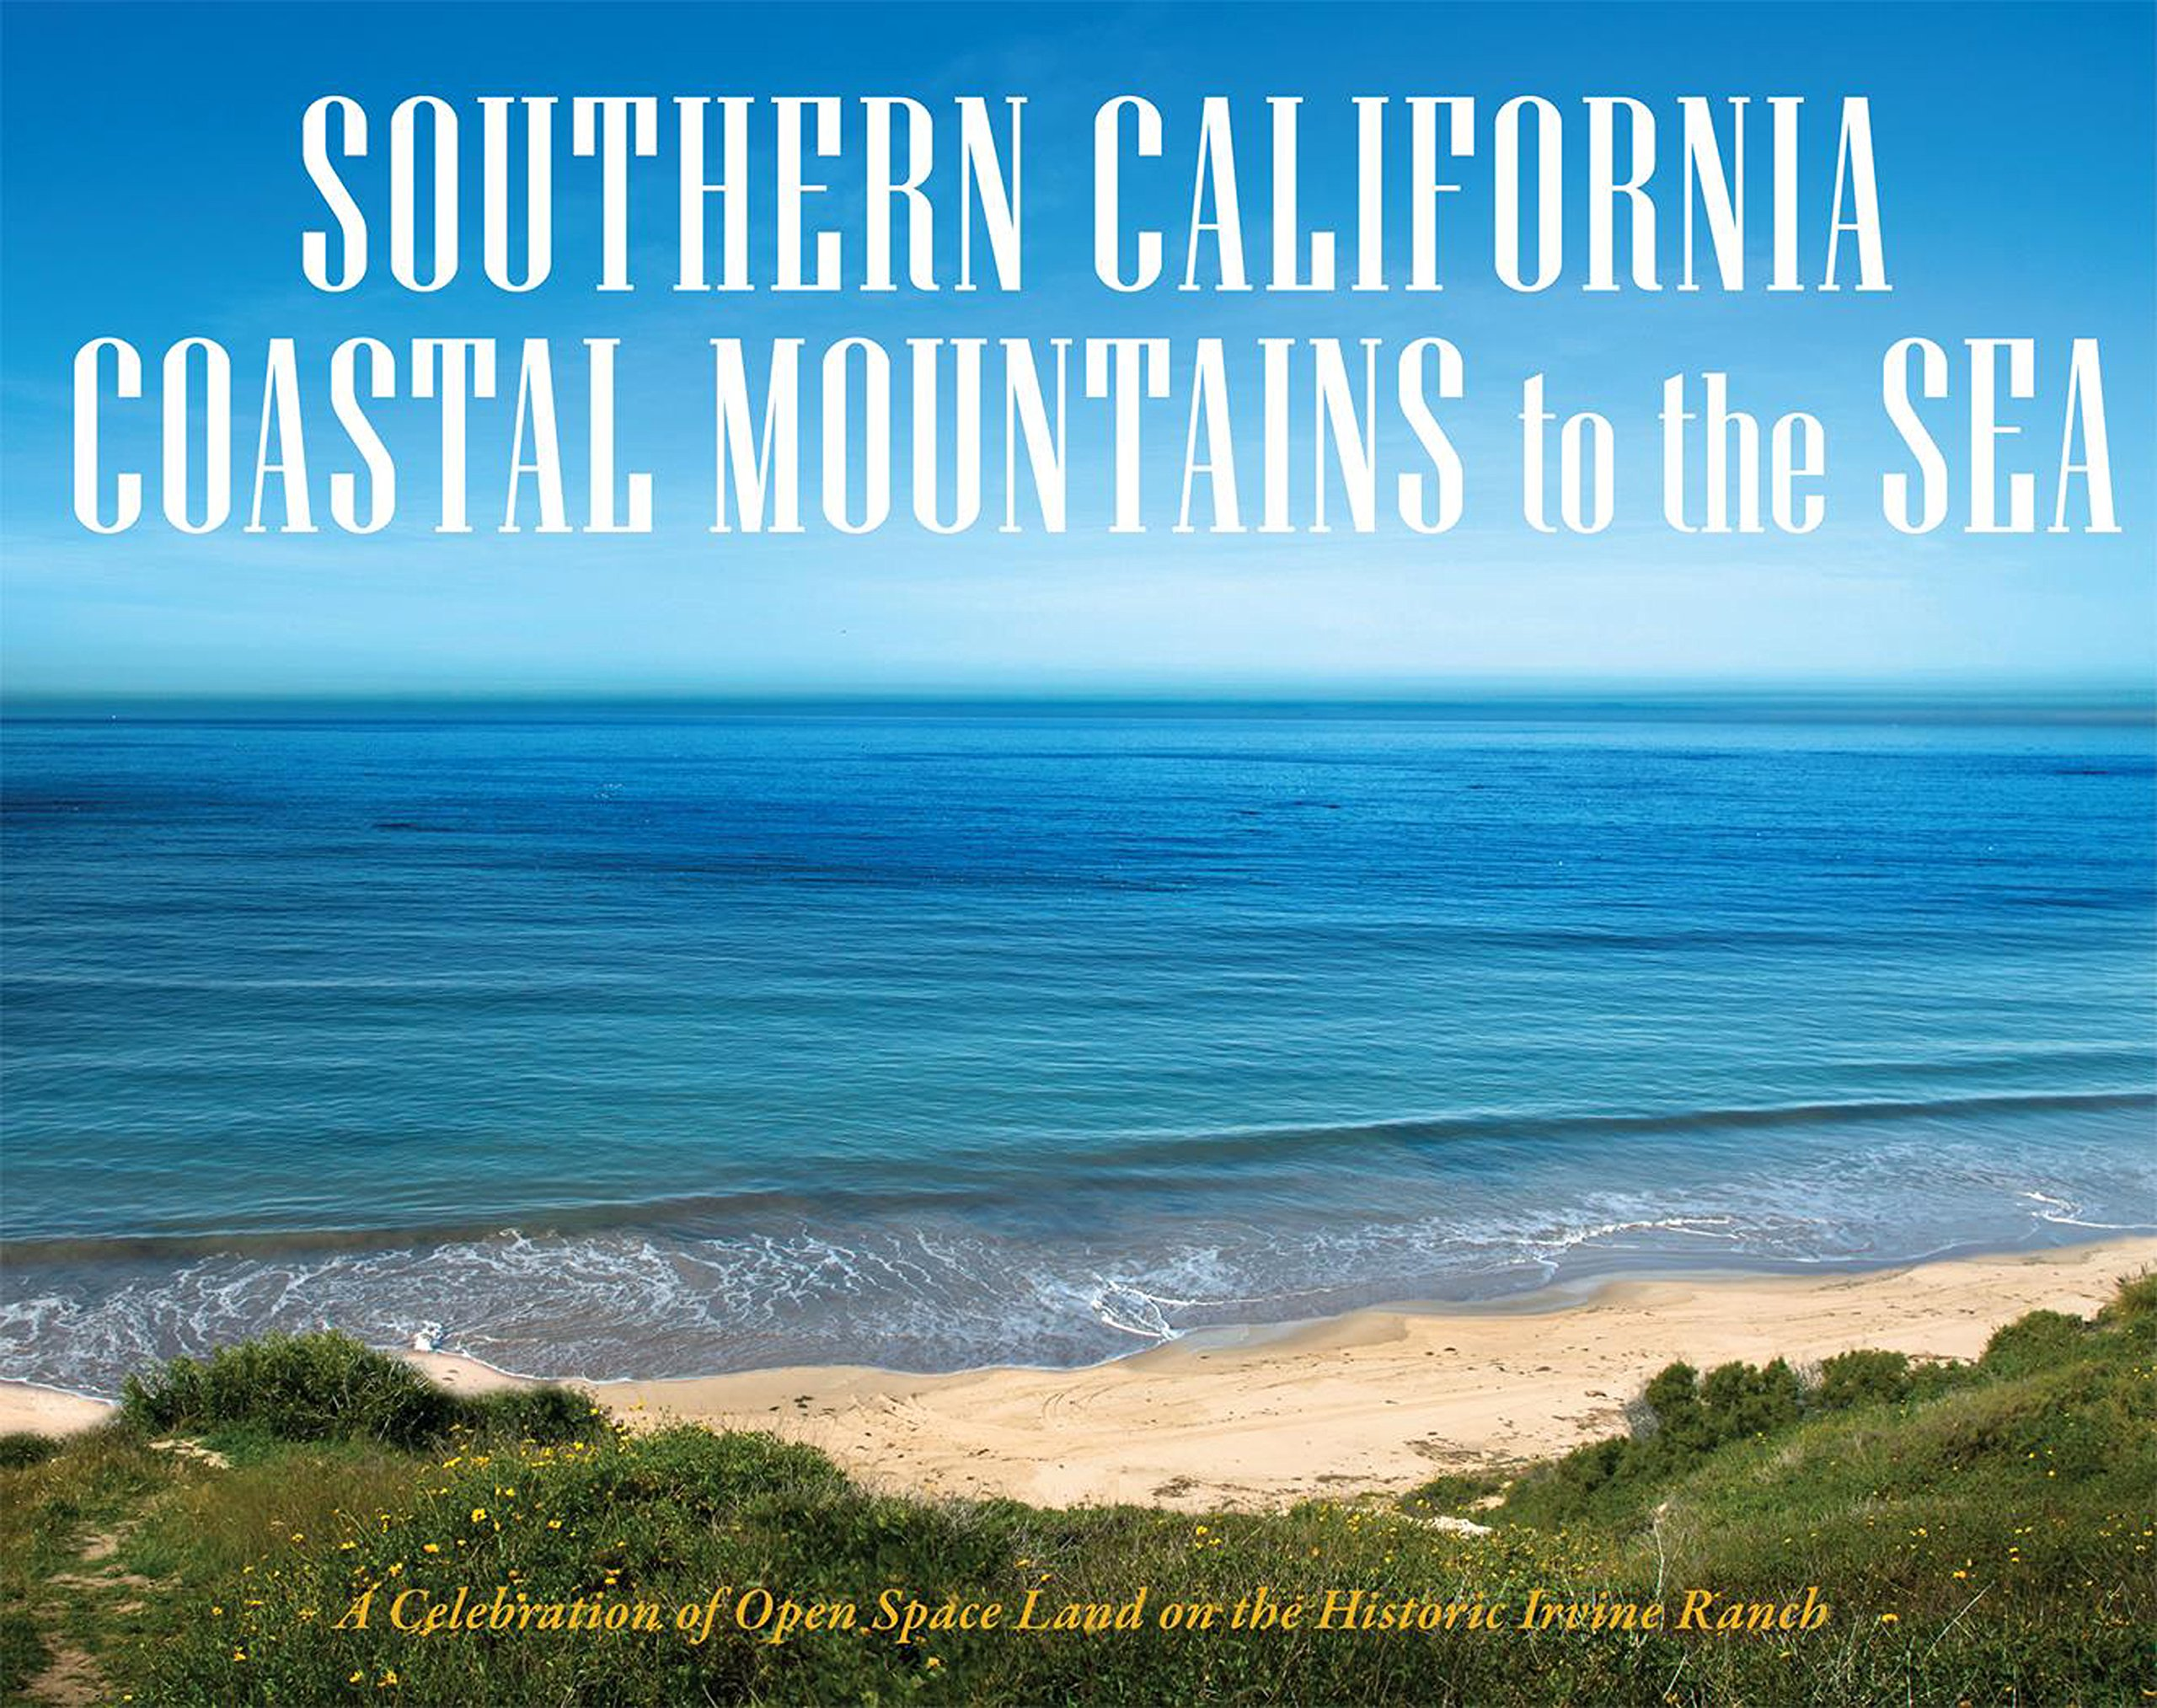 Southern California Coastal Mountains to the Sea: A Celebration of Open Space on the Historic Irvine Ranch PDF